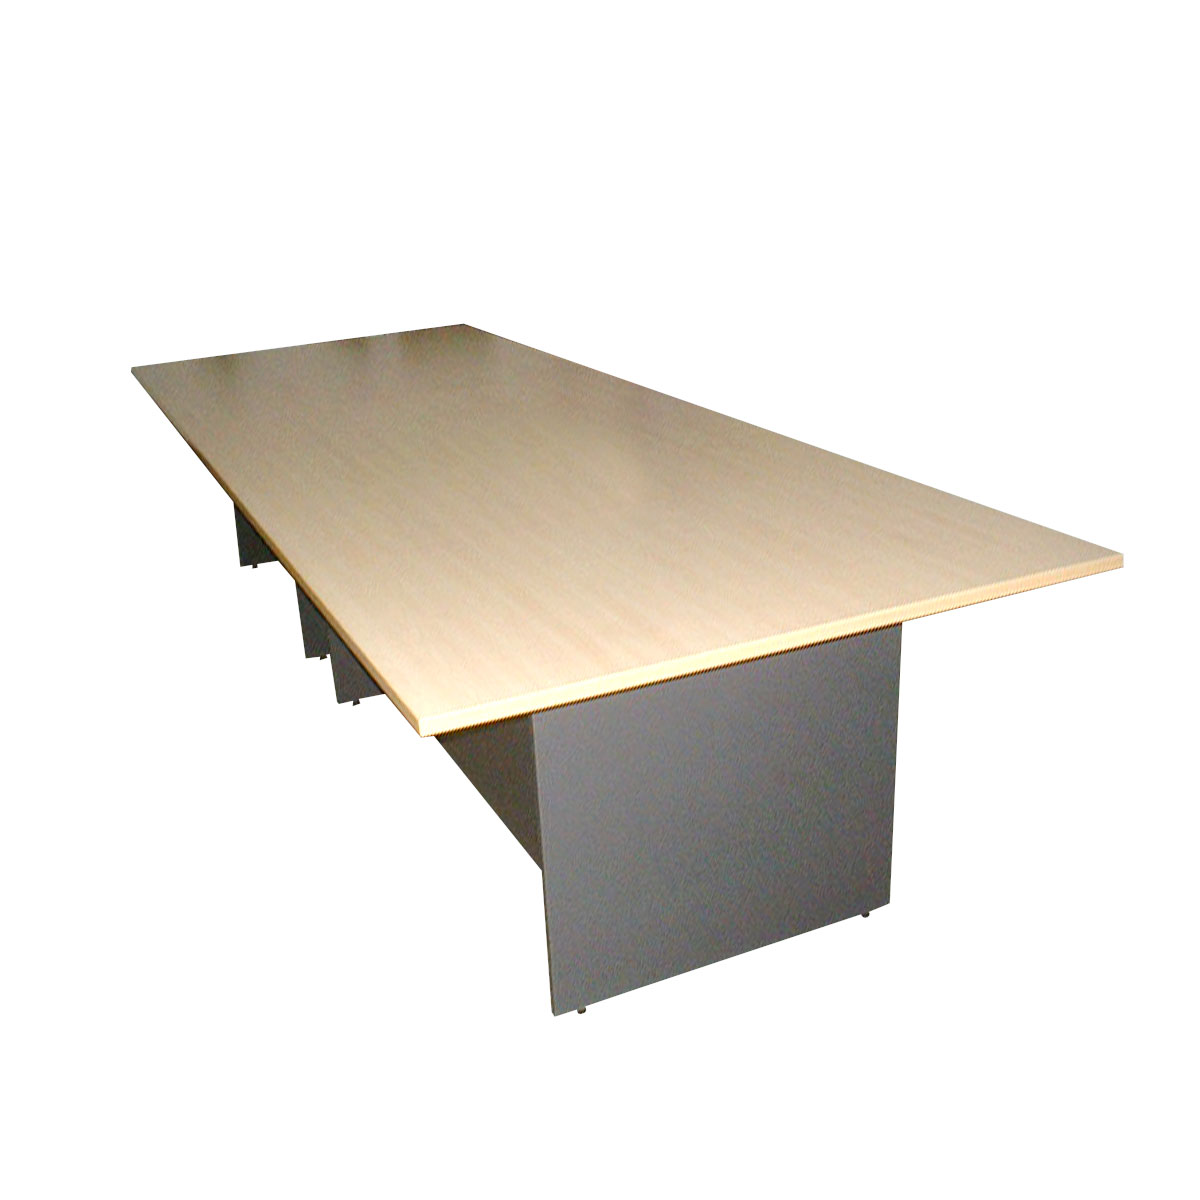 meeting-table-wooden-rectangular-shape.jpg